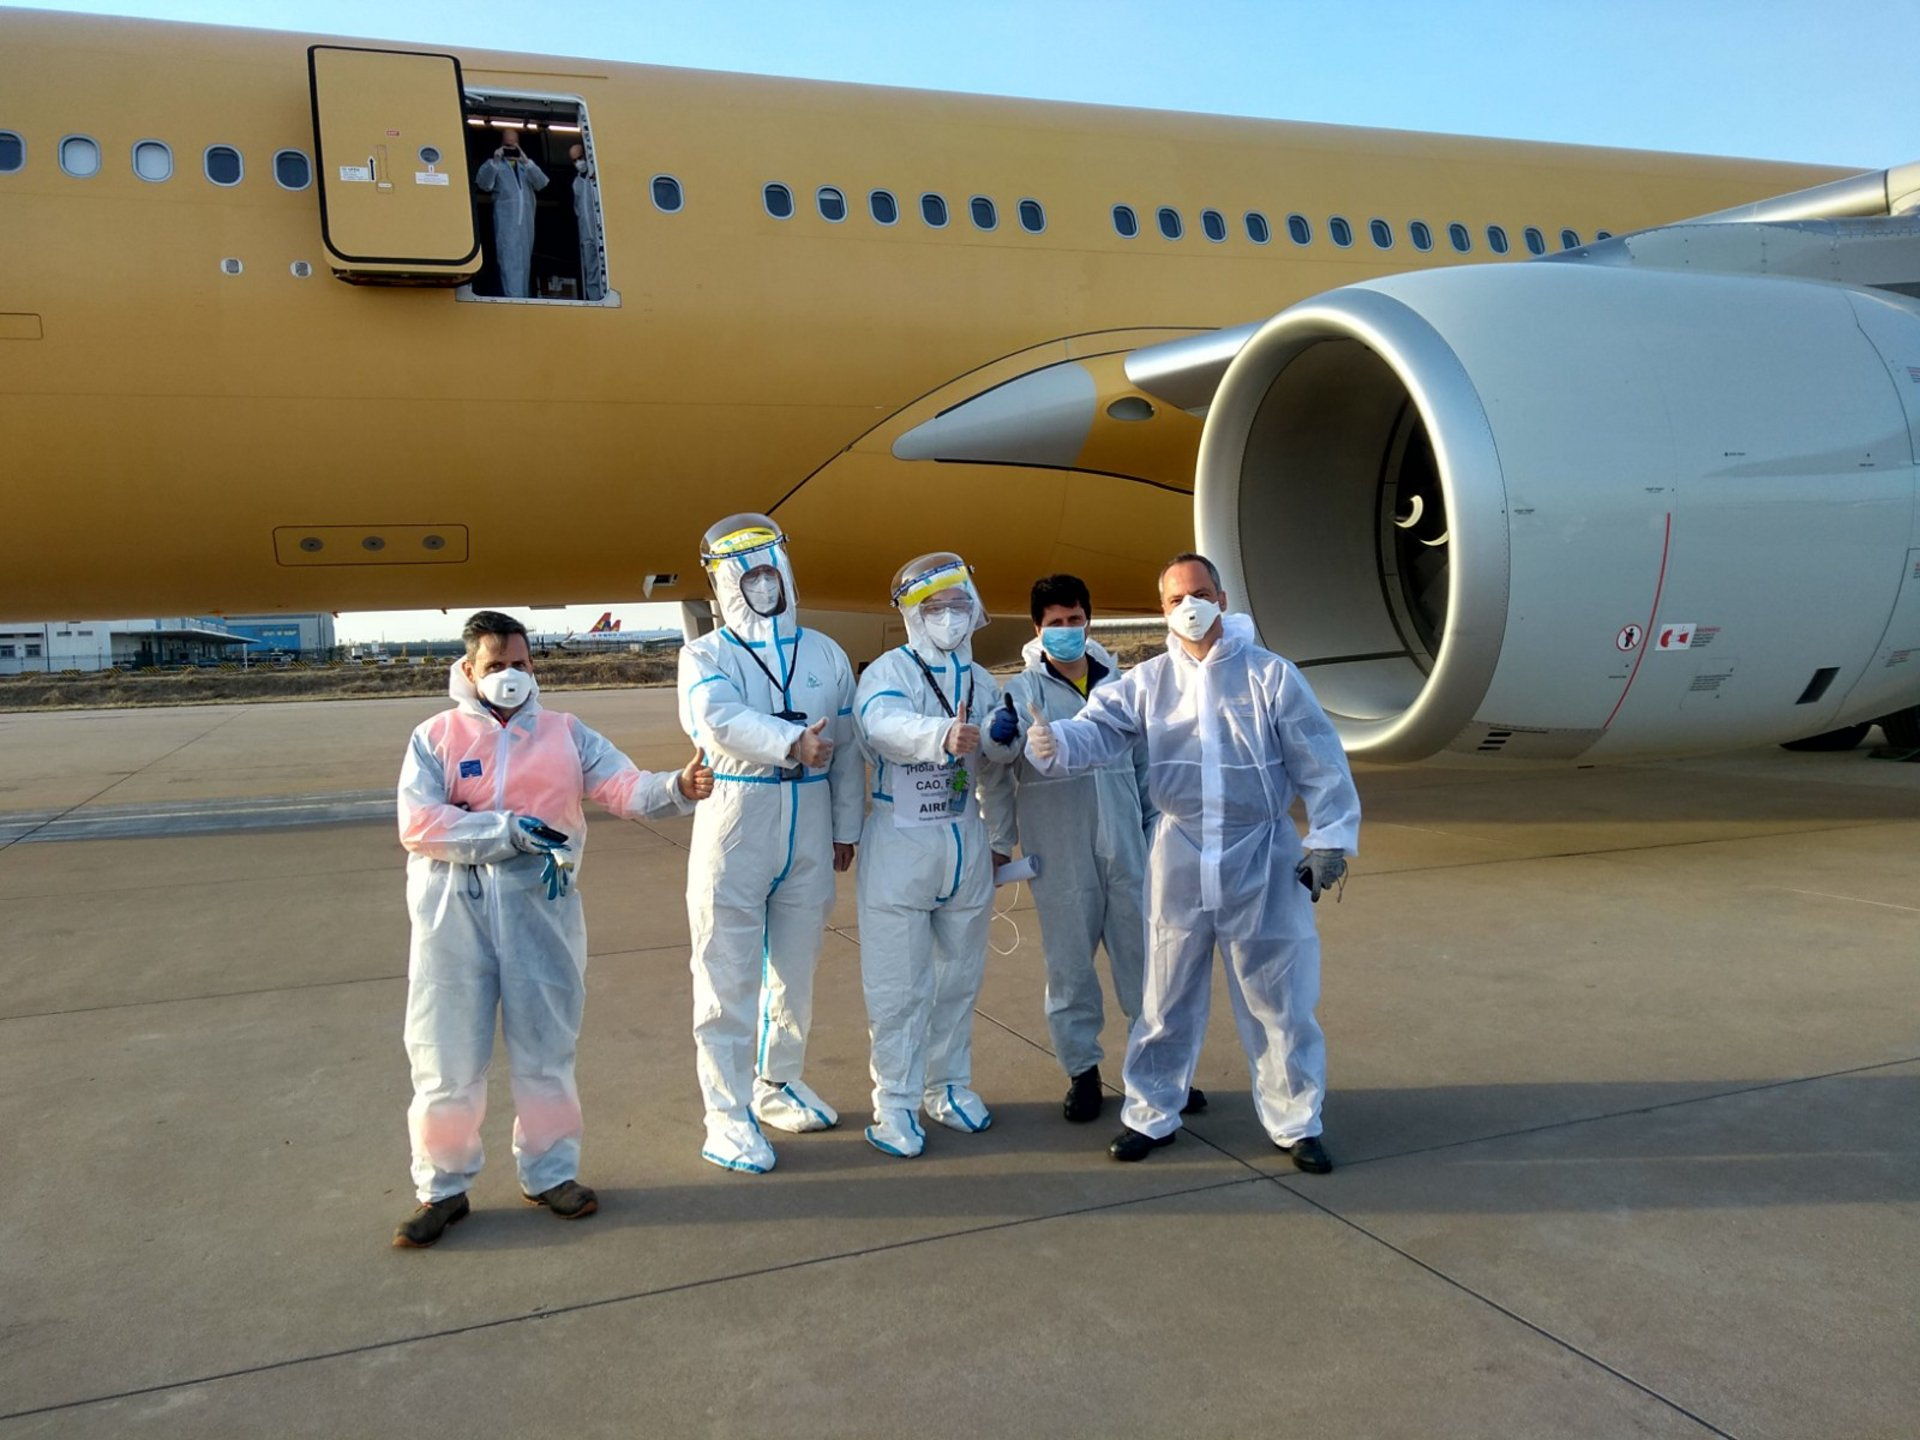 An all-volunteer crew from Airbus Defence and Space – including pilots, ground crew specialists, test flight engineers and a flight test engineer – pulled together to deliver life-saving medical supplies that will be used across France, Germany, Spain and the United Kingdom; the mission utilised an Airbus A330-300 that ultimately will be converted into an A330 Multi-Role Tanker Transport